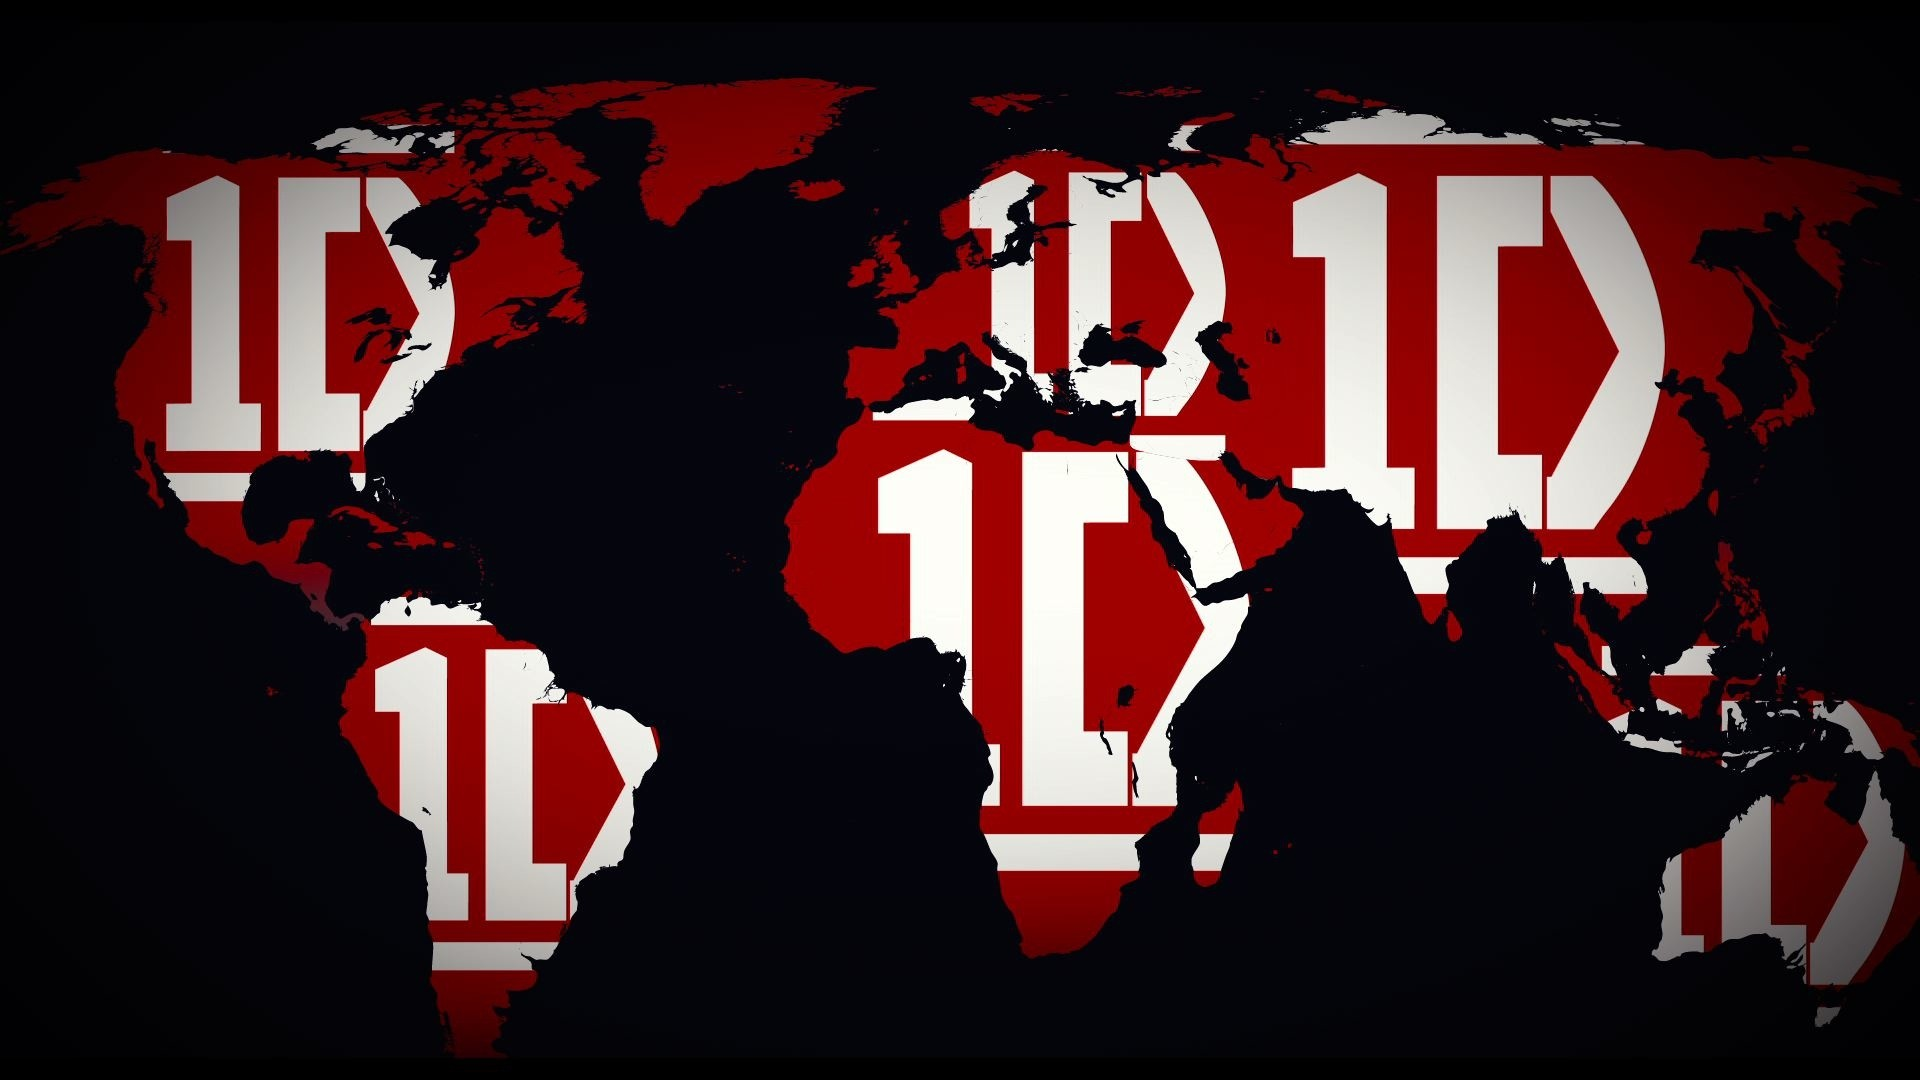 One Direction – in (Teaser Trailer) Oh my gosh. If I cried a lot during  just this, the teaser trailer, I will be bawling in the movie. SO EXCITED!